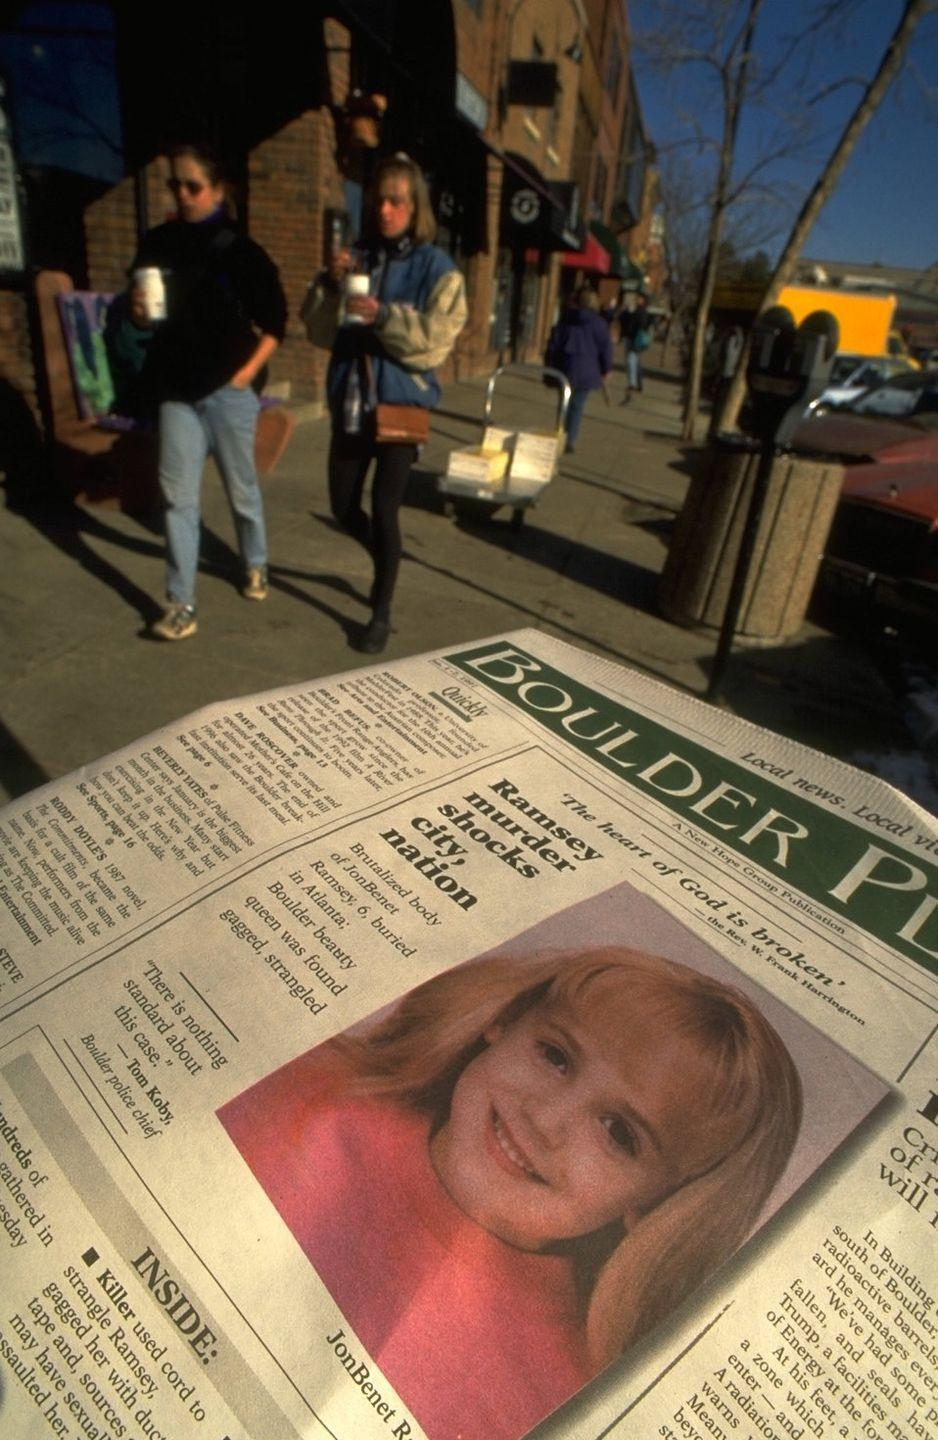 "<p>On the early morning of December 26, 1996, Patsy Ramsey uncovered a ransom note seeking $118,000 for her 6-year-old daughter's safe return. She called the police, and shortly thereafter the body of her young daughter, JonBenét, was discovered <a href=""https://www.cnn.com/2013/08/29/us/jonbenet-ramsey-murder-fast-facts/index.html"" rel=""nofollow noopener"" target=""_blank"" data-ylk=""slk:lifeless on the basement floor"" class=""link rapid-noclick-resp"">lifeless on the basement floor</a> of their home in Boulder, Colorado. The young pageant star's skull was fractured, and duct tape has been placed over her mouth. (continued)</p>"